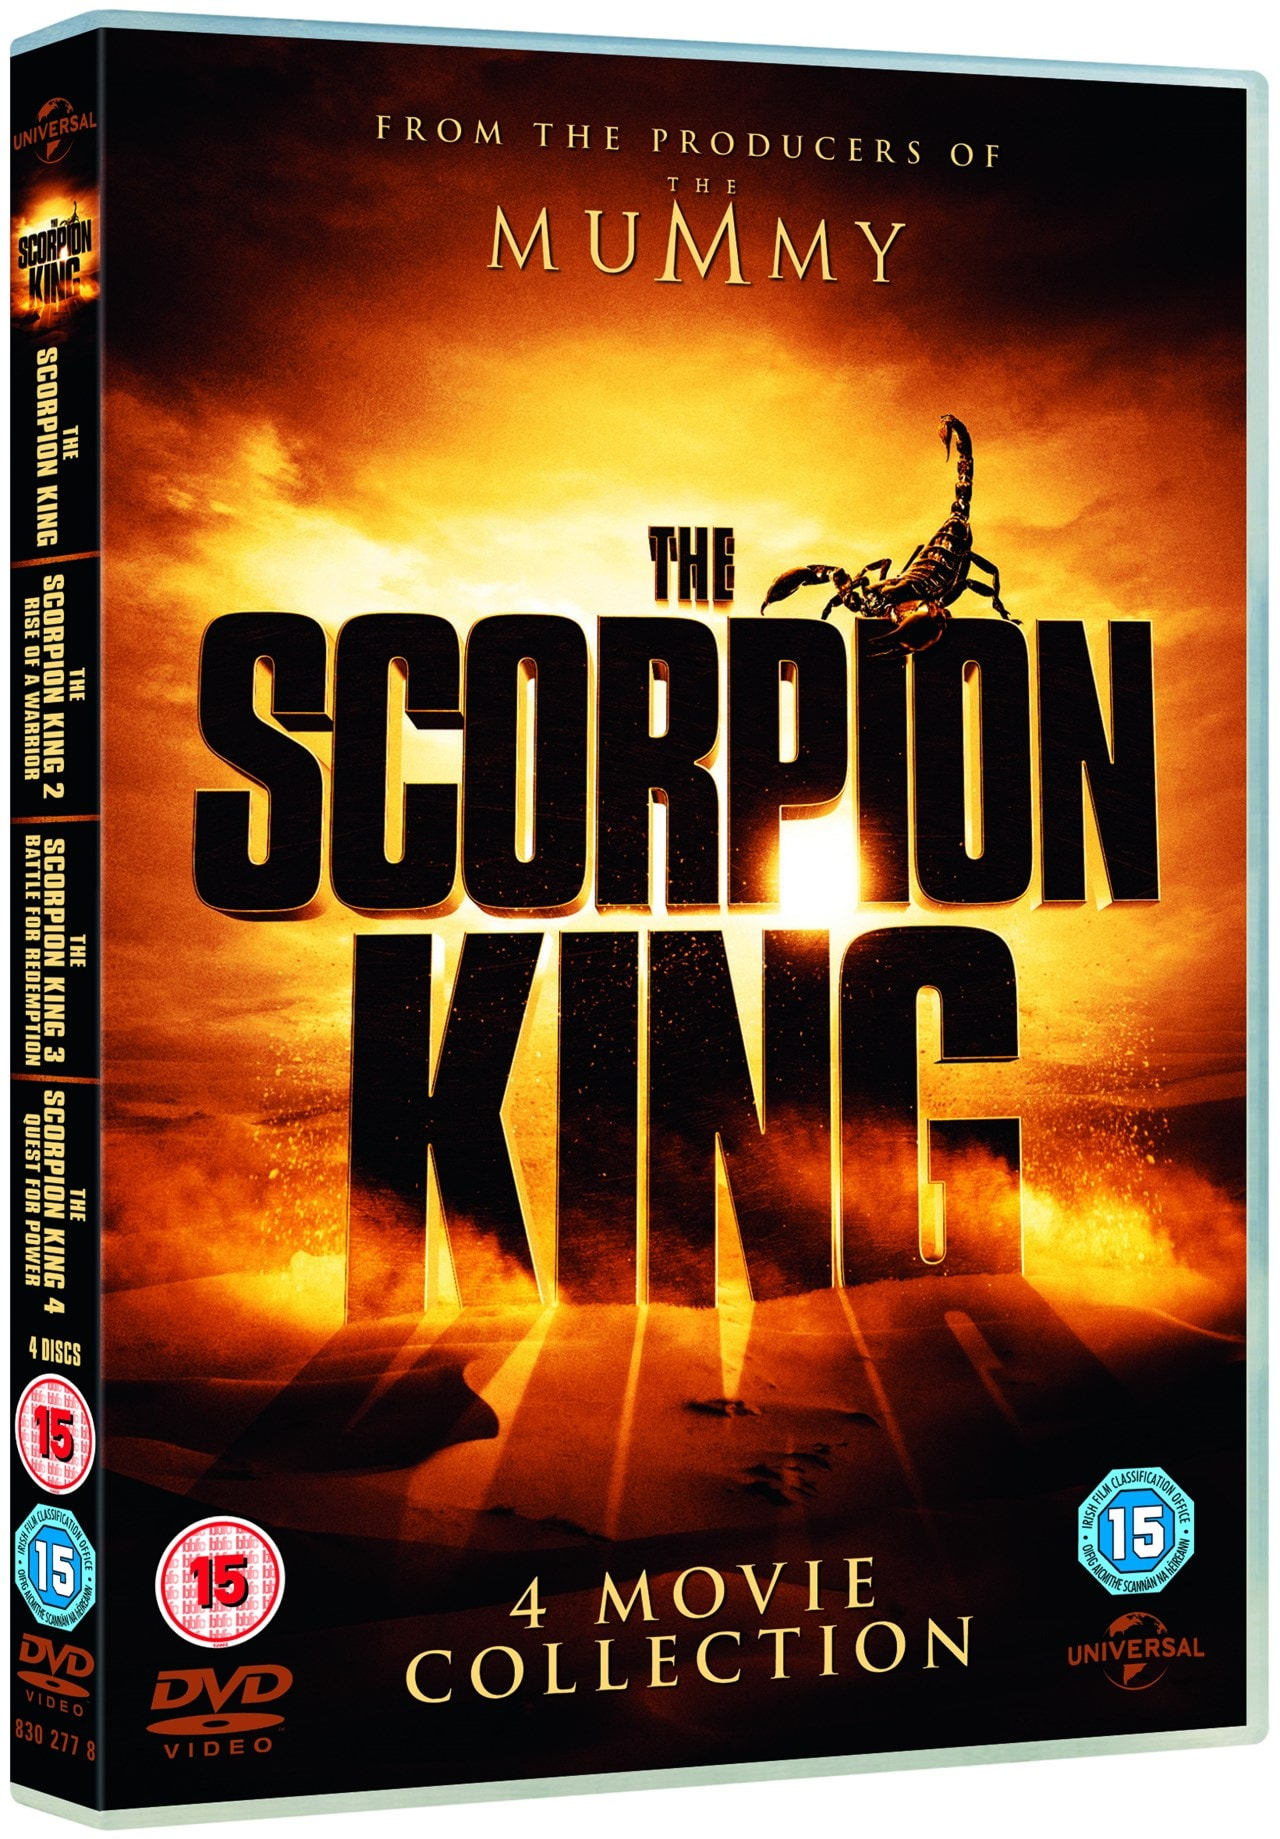 The Scorpion King: 4-movie Collection - 2